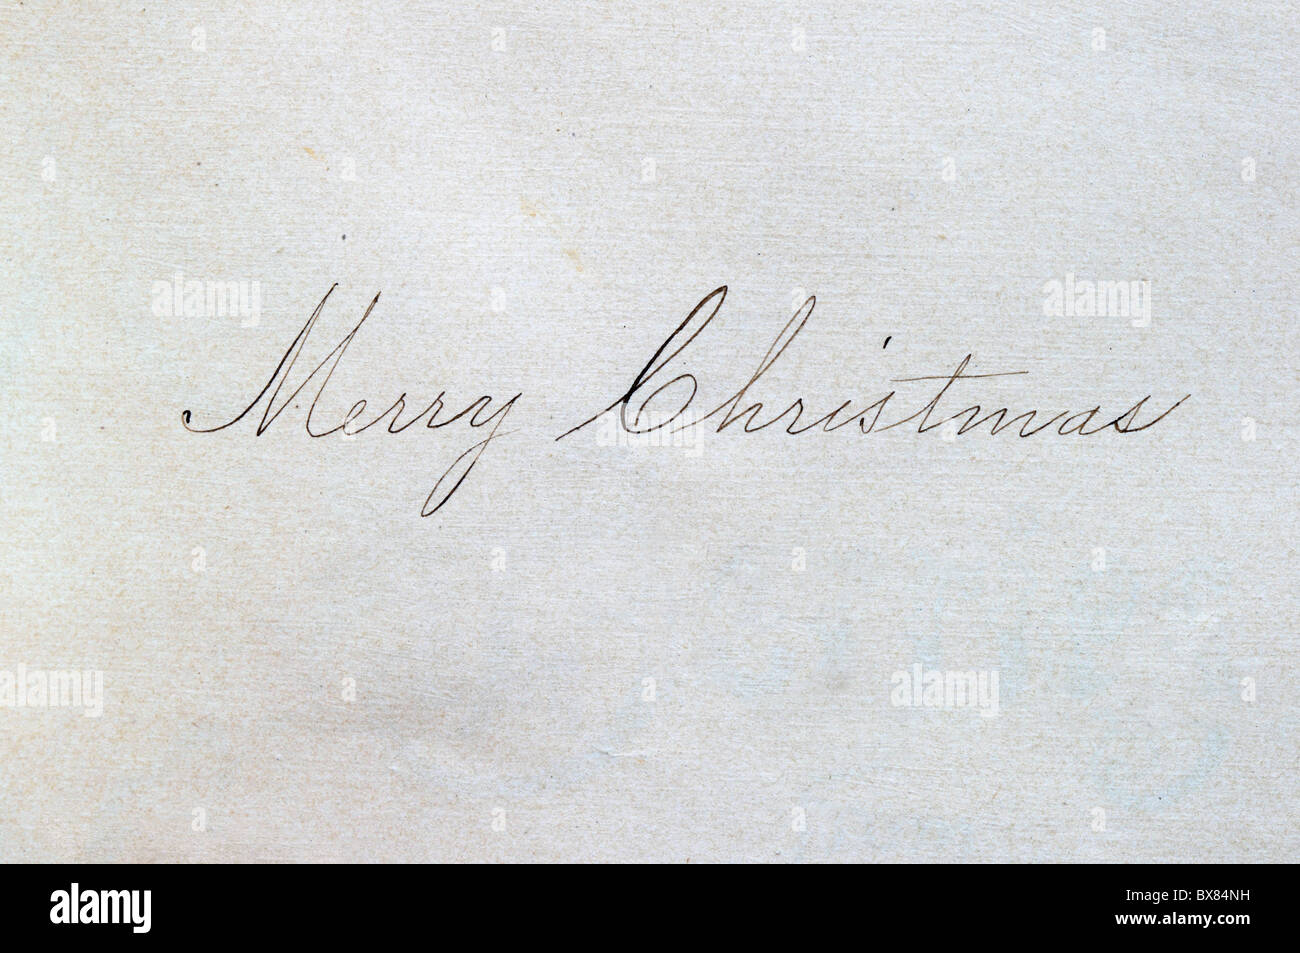 merry christmas written in cursive script on paper an ink pen merry christmas written in cursive script on paper an ink pen